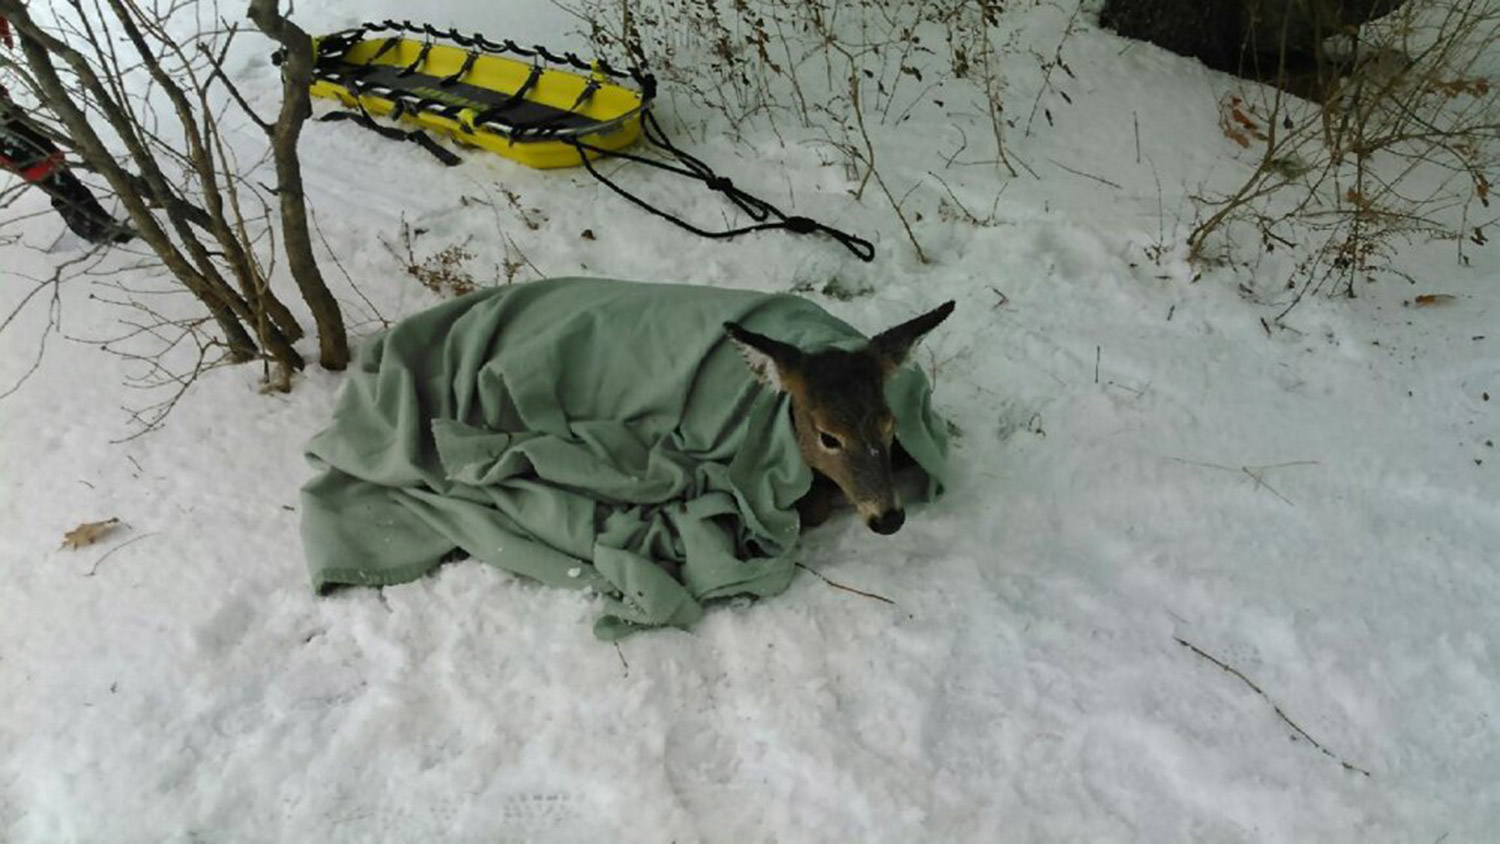 Used Cars Red Deer >> Crews rescue deer that fell through ice on Kennebec River - The Portland Press Herald / Maine ...